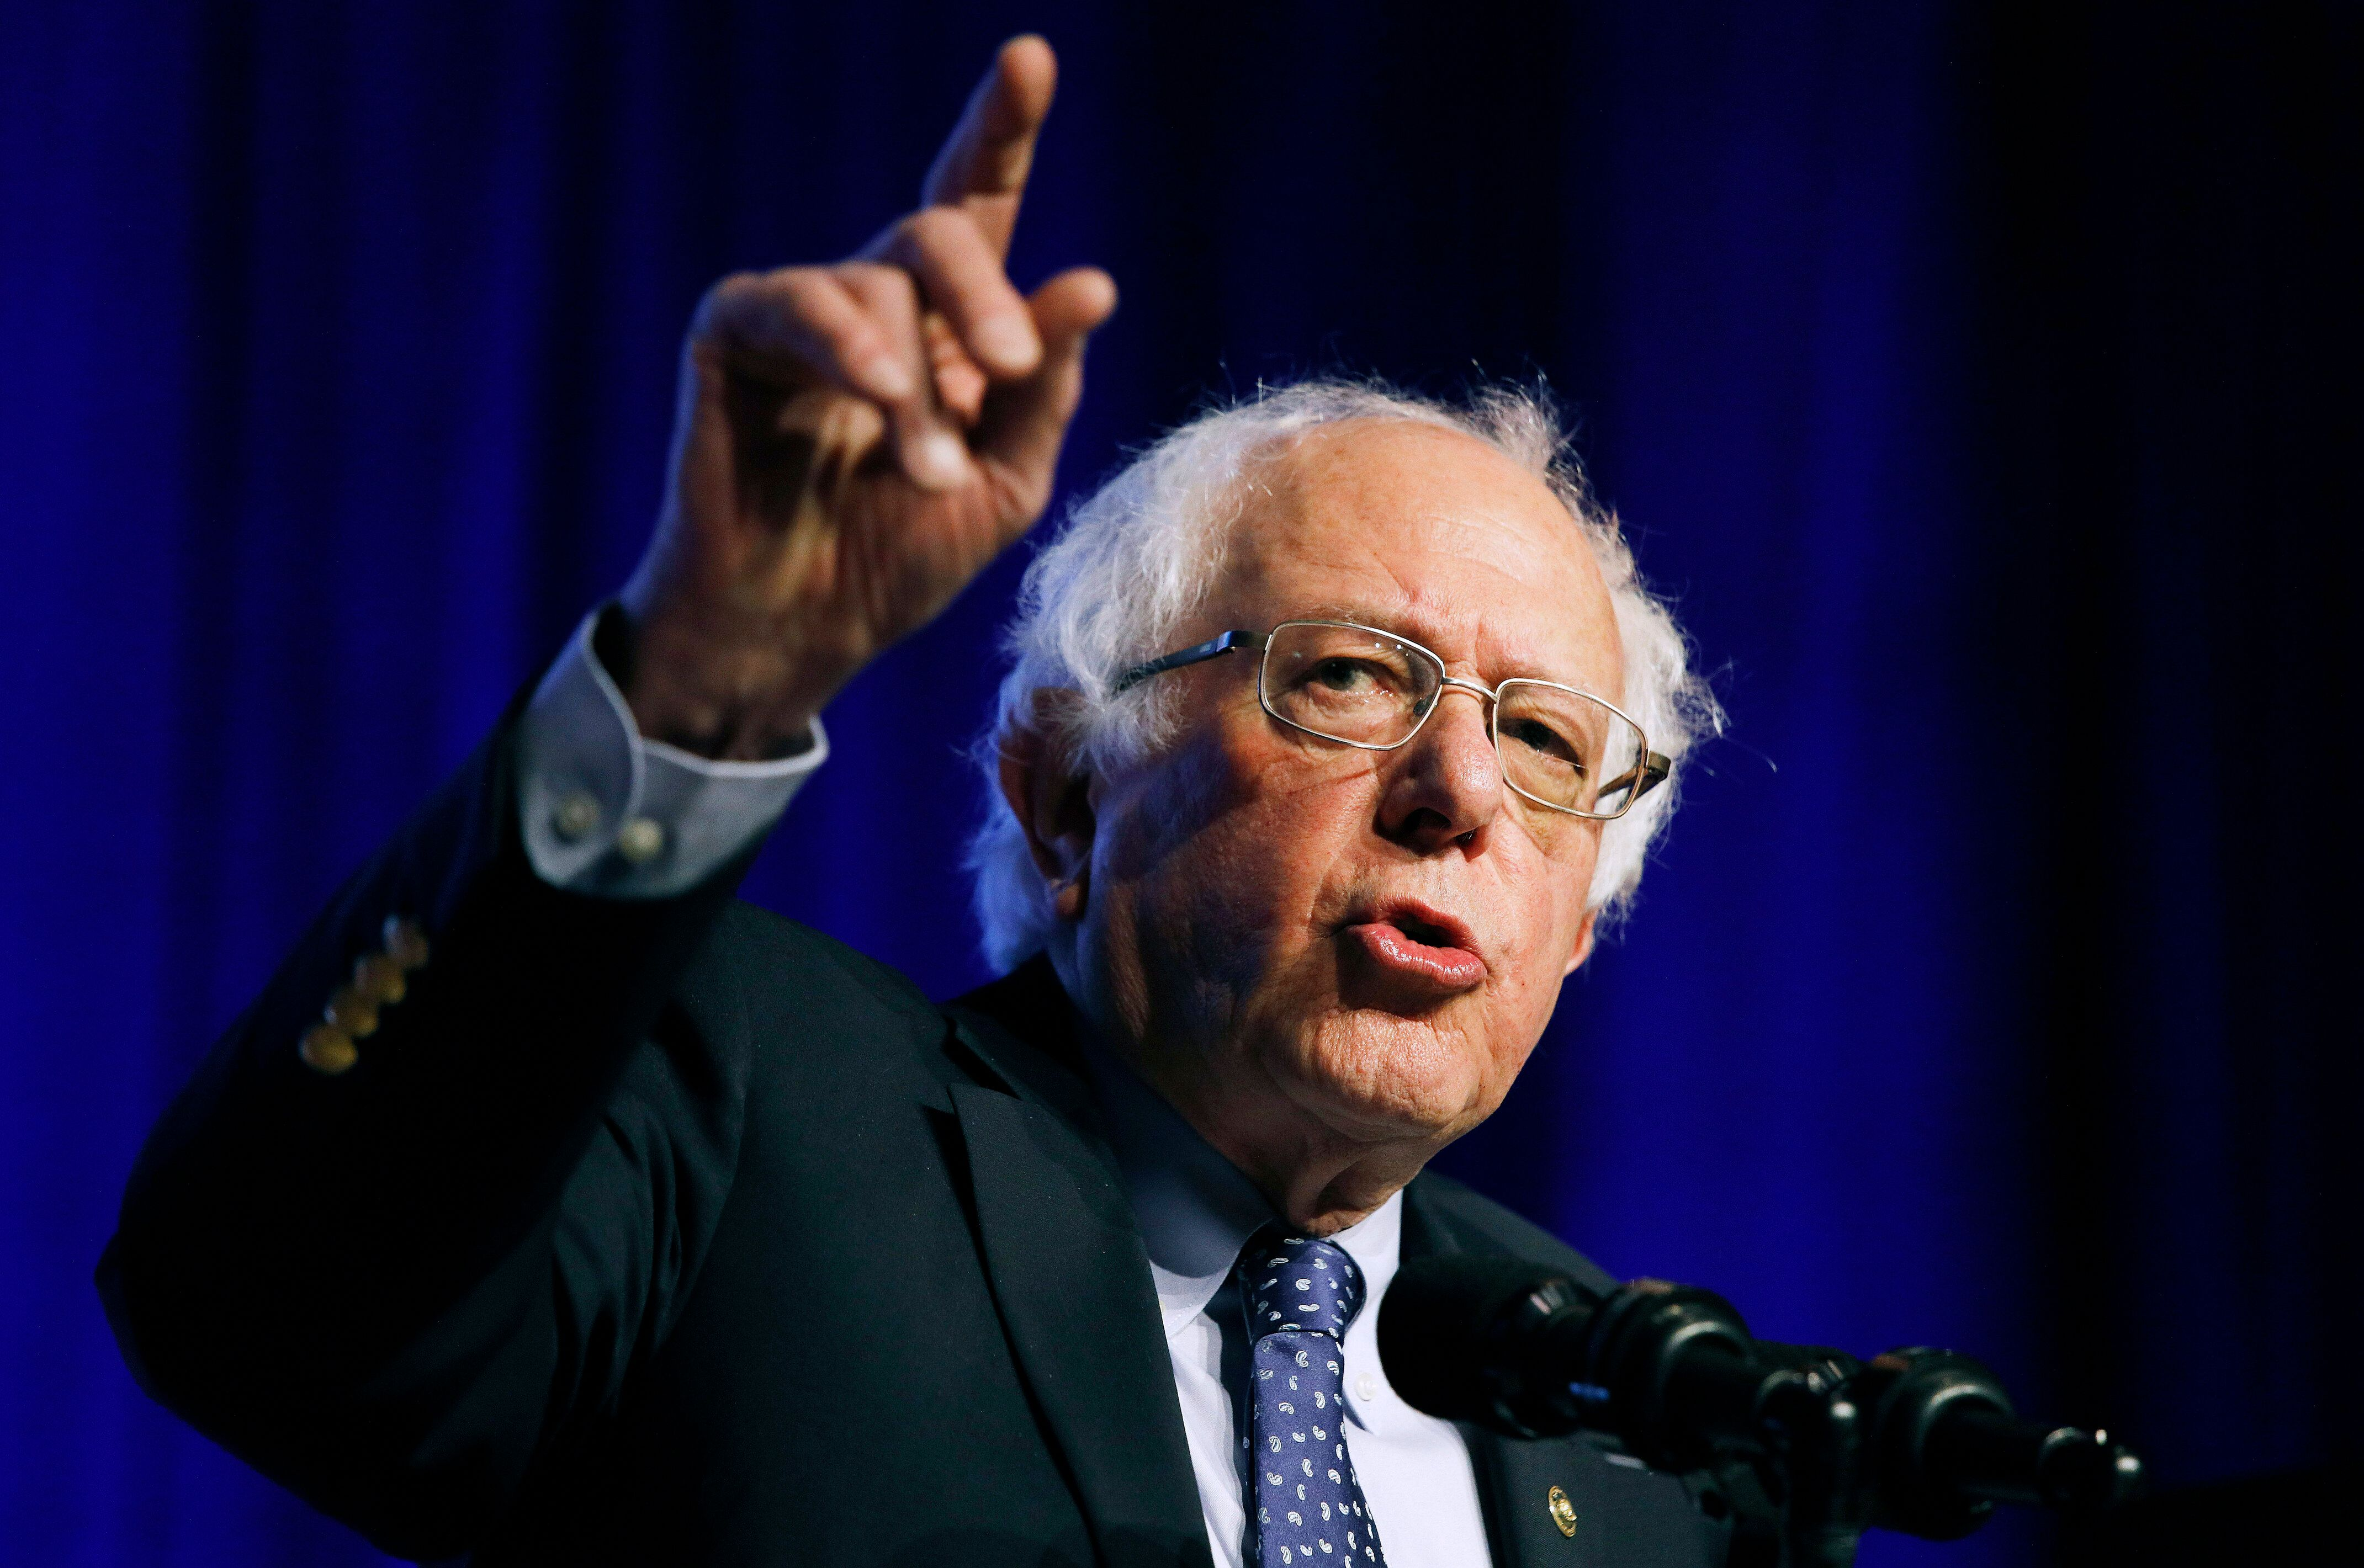 "FILE - In this Monday, April 8, 2019 file photo, Democratic presidential candidate Sen. Bernie Sanders, I-Vt., speaks at a convention of the International Association of Machinists and Aerospace Workers, in Las Vegas. Sanders is heading back to the friendly turf of Wisconsin for a rally that kicks off a swing through states that are key to the Democratic ""blue wall"" strategy for 2020. Sanders' event Friday, April 12, in Madison will be followed by weekend stops in Indiana, Ohio, Michigan and Pennsylvania. (AP Photo/John Locher, File)"